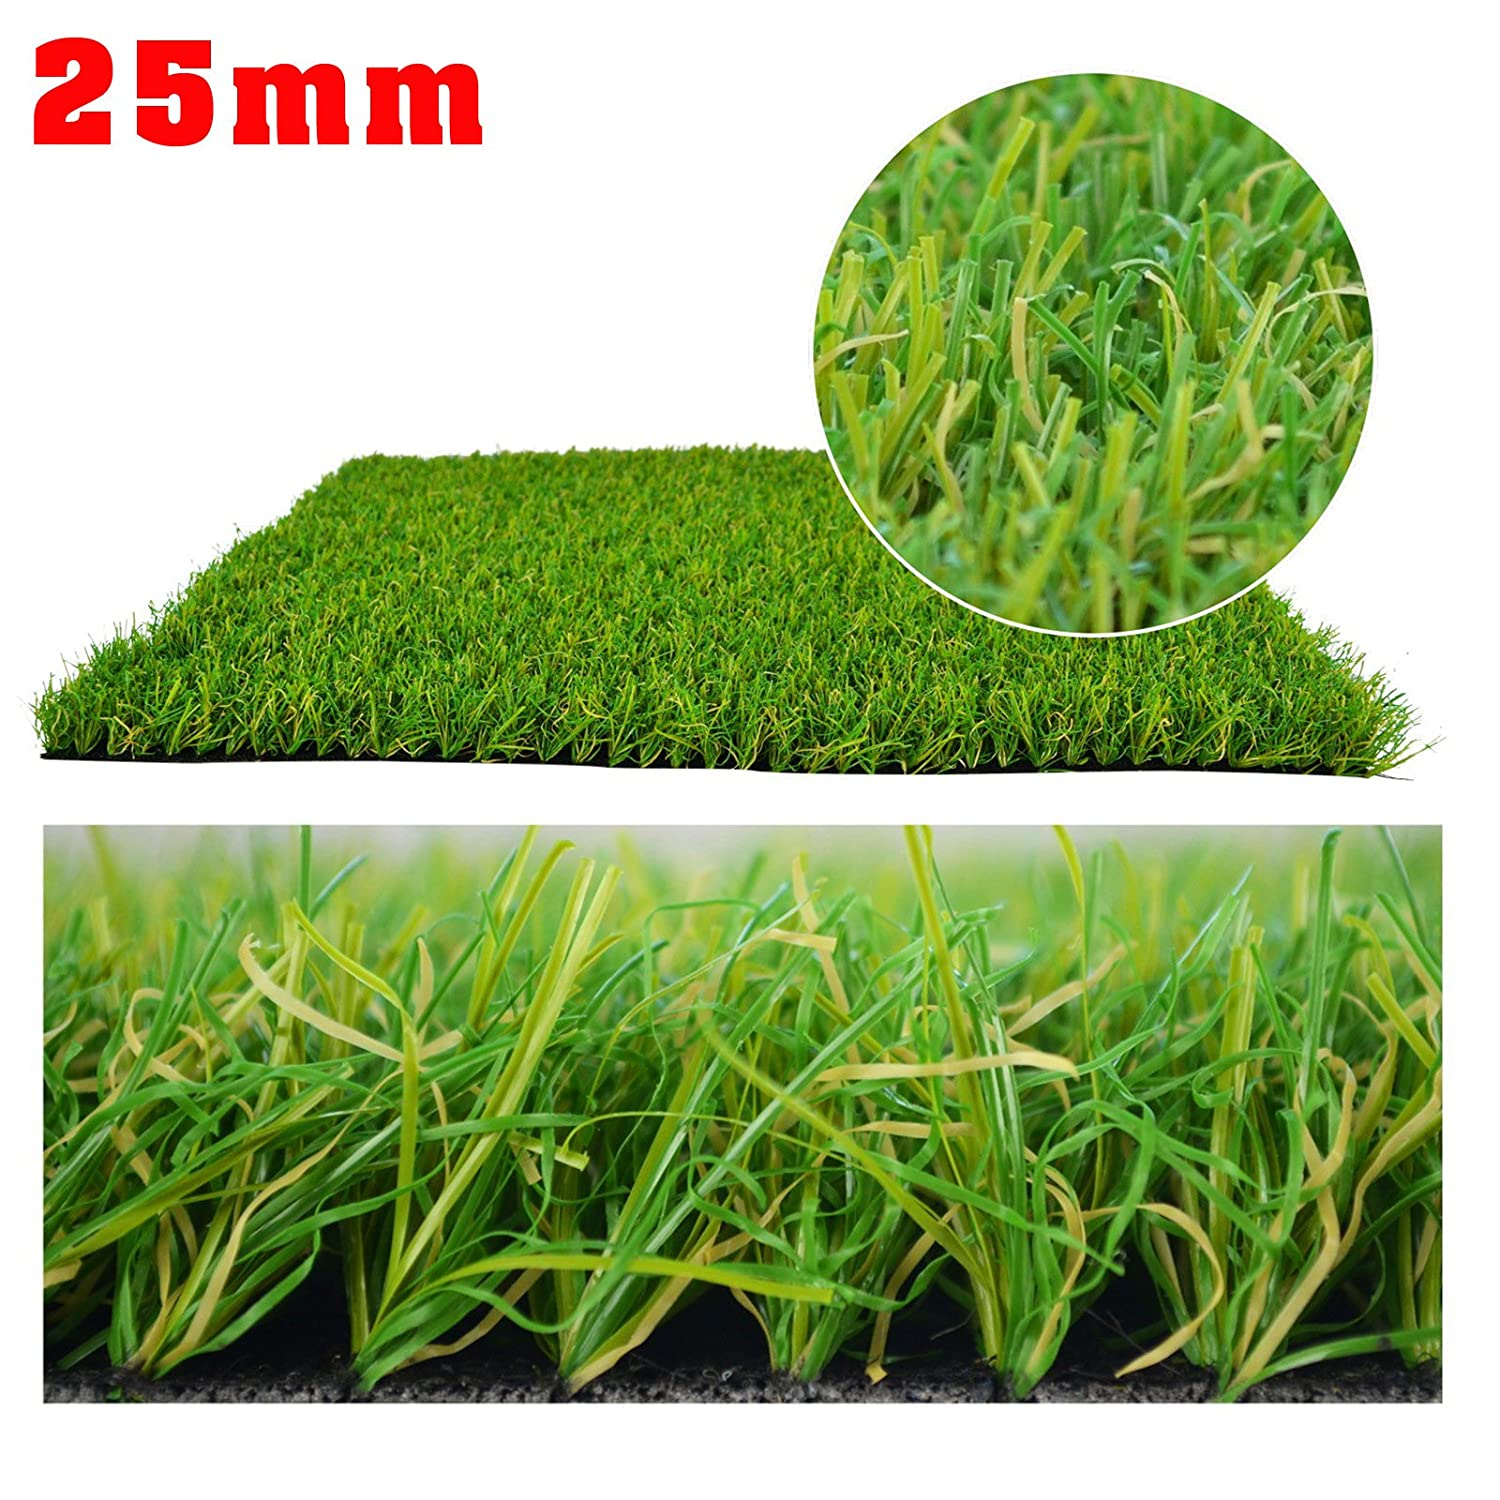 25mm Meadow Creek Artificial Grass High Quality Cheap Realistic Natural Astro Green Fake Lawn Garden 2X1 Belgium